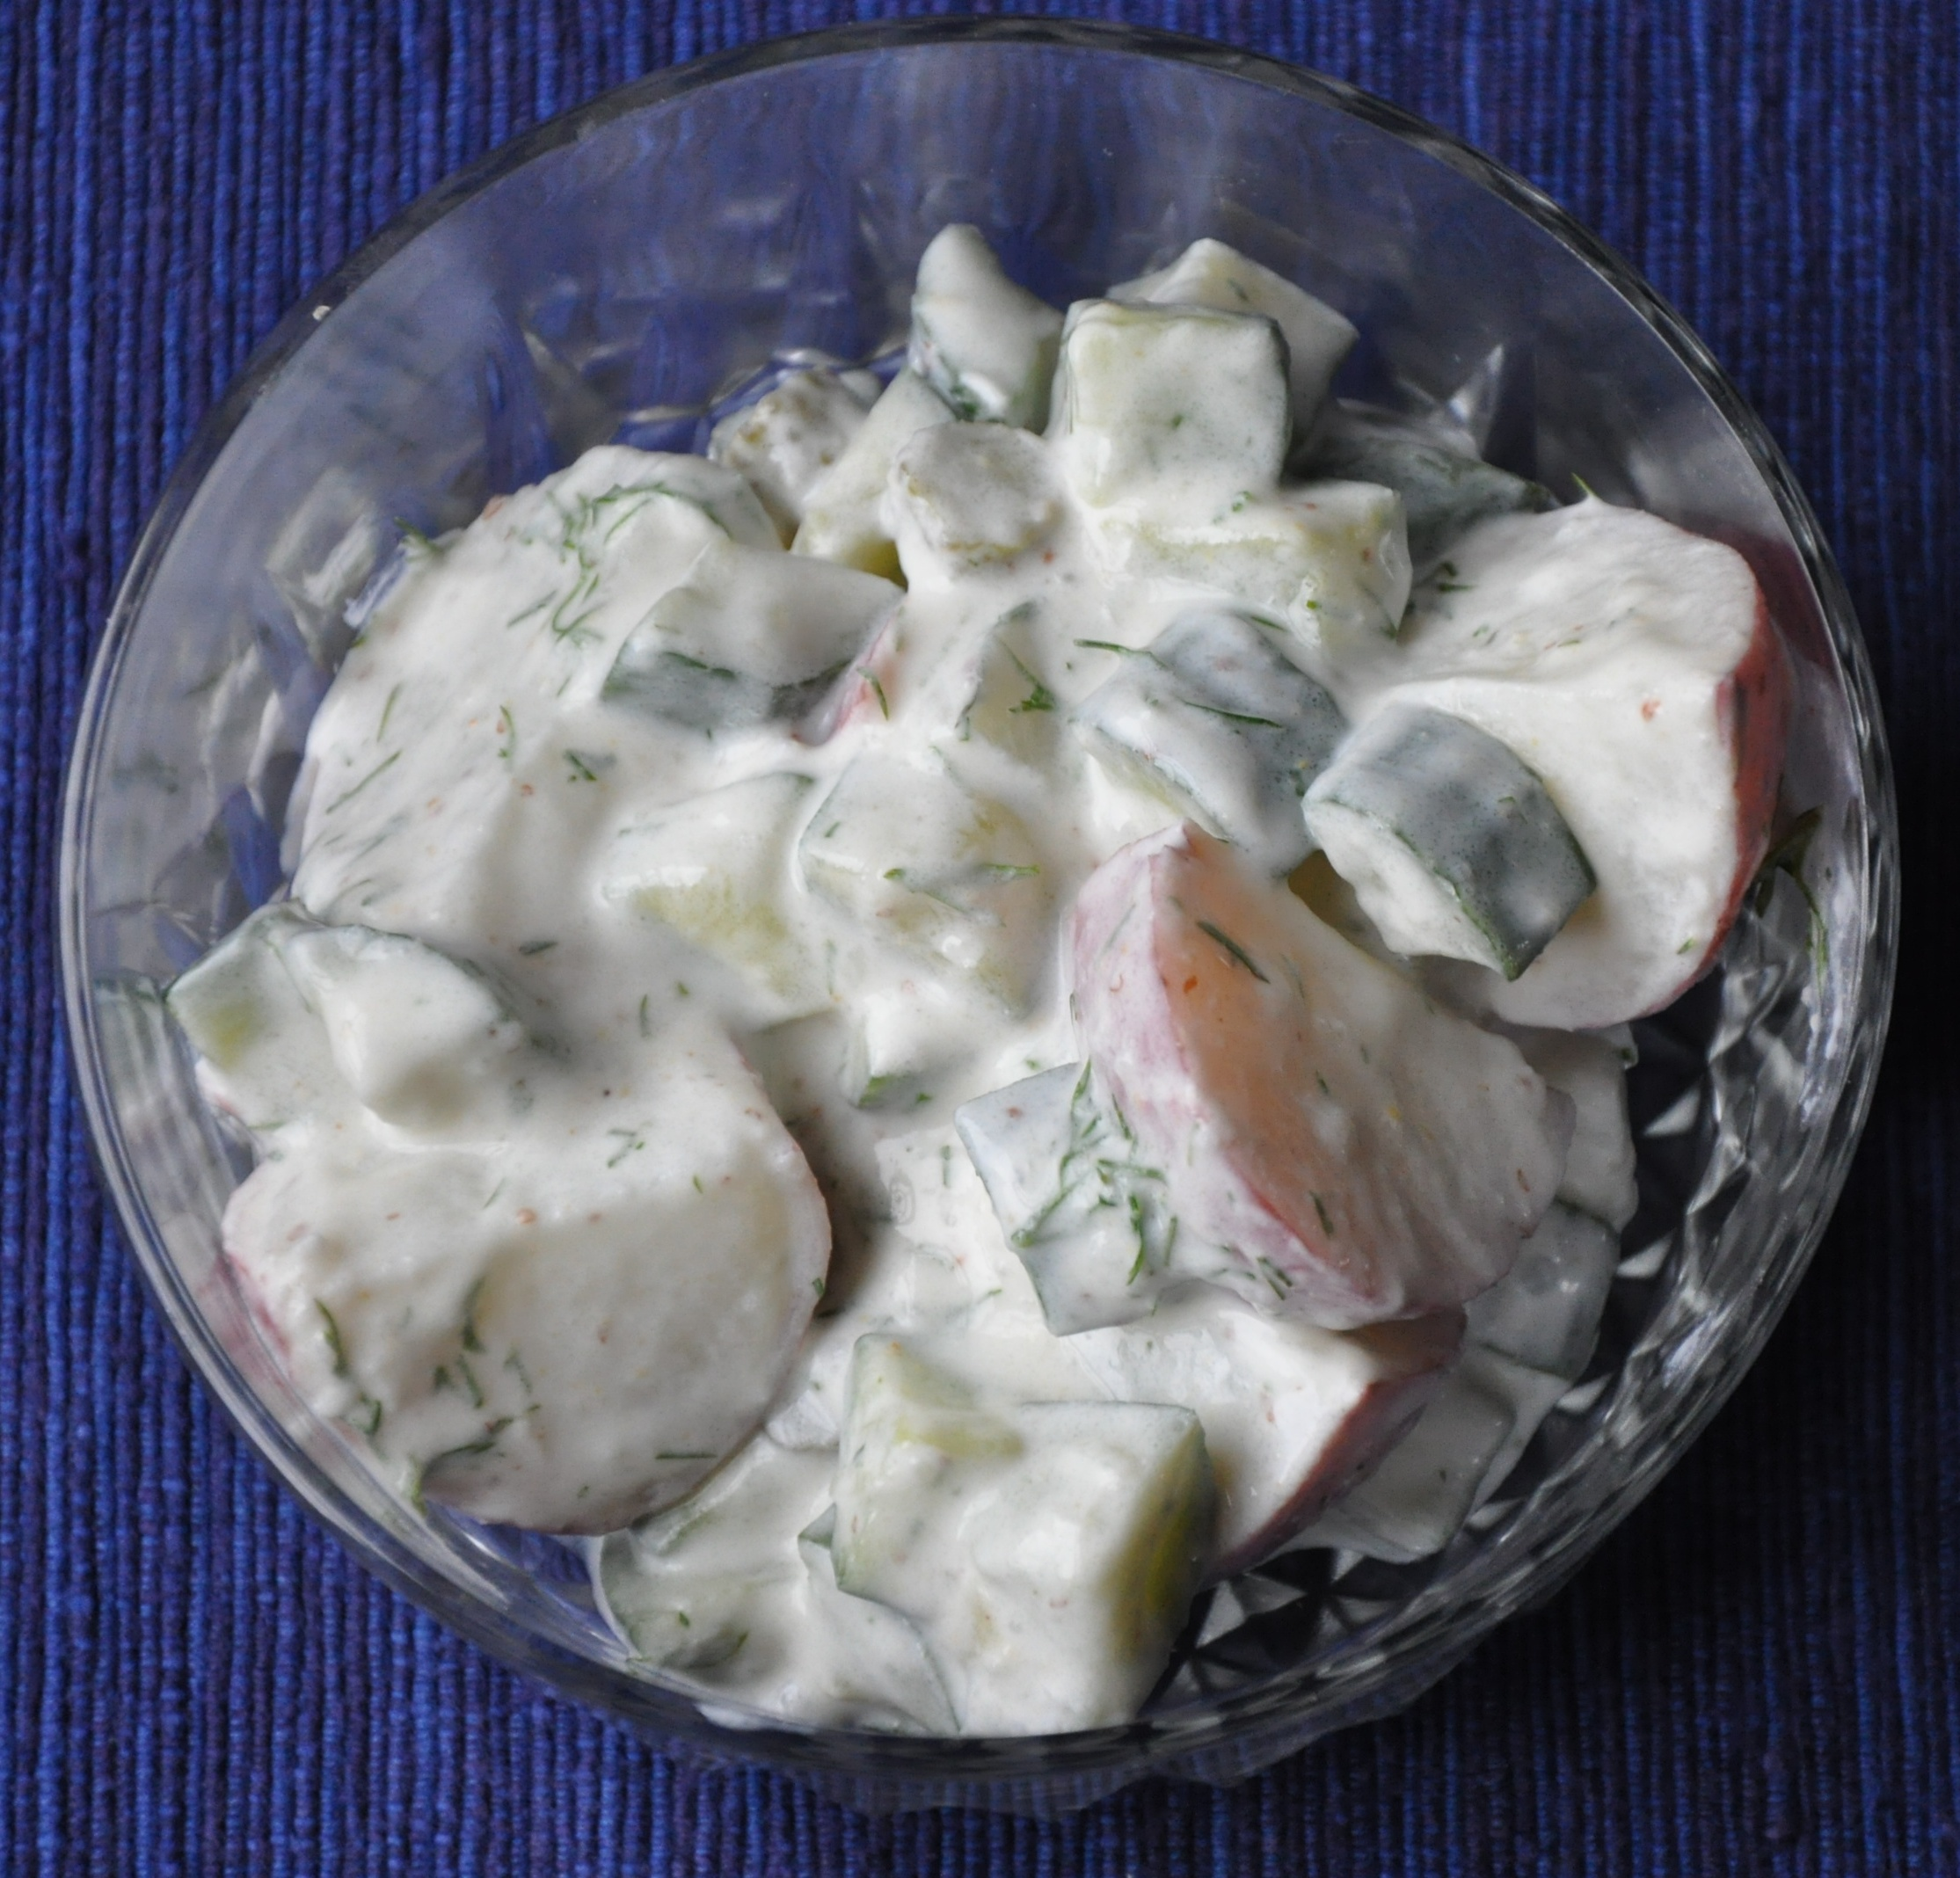 Potato Salad with Sauerkraut, Buttermilk and Horseradish